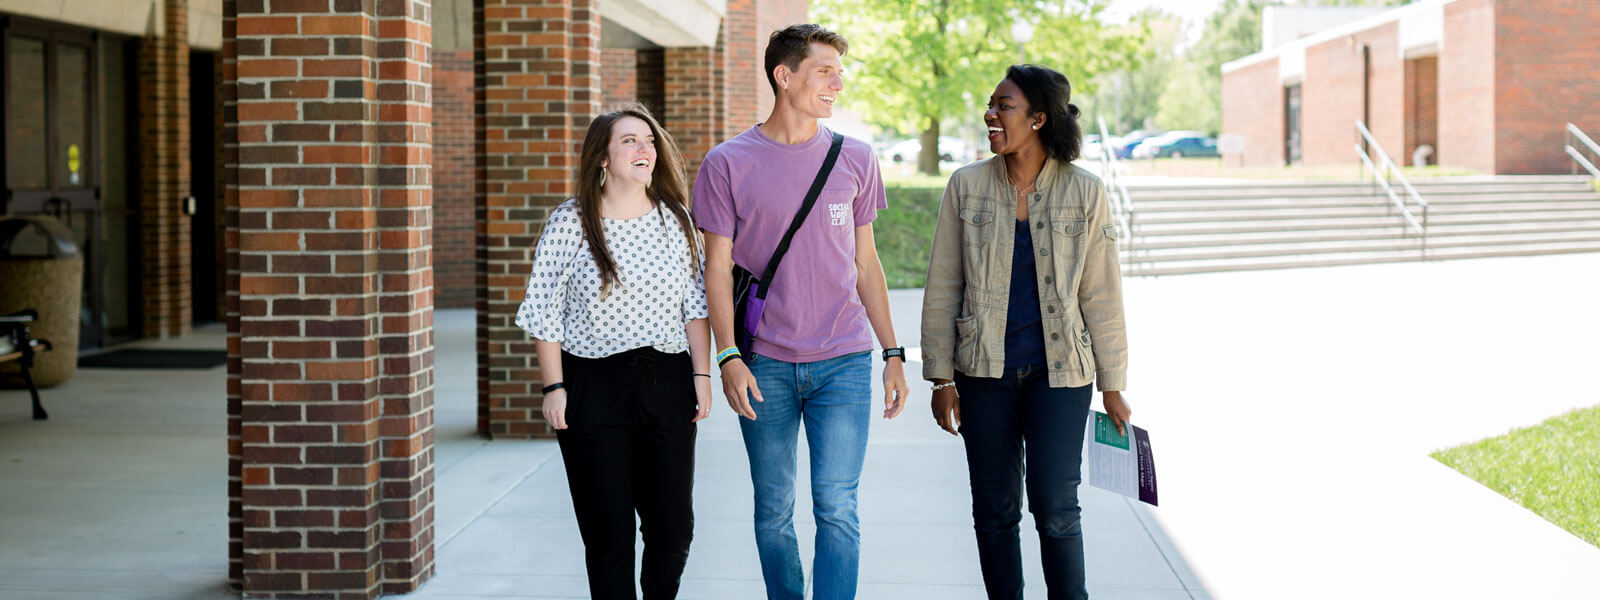 three students walking on sidewalk on campus